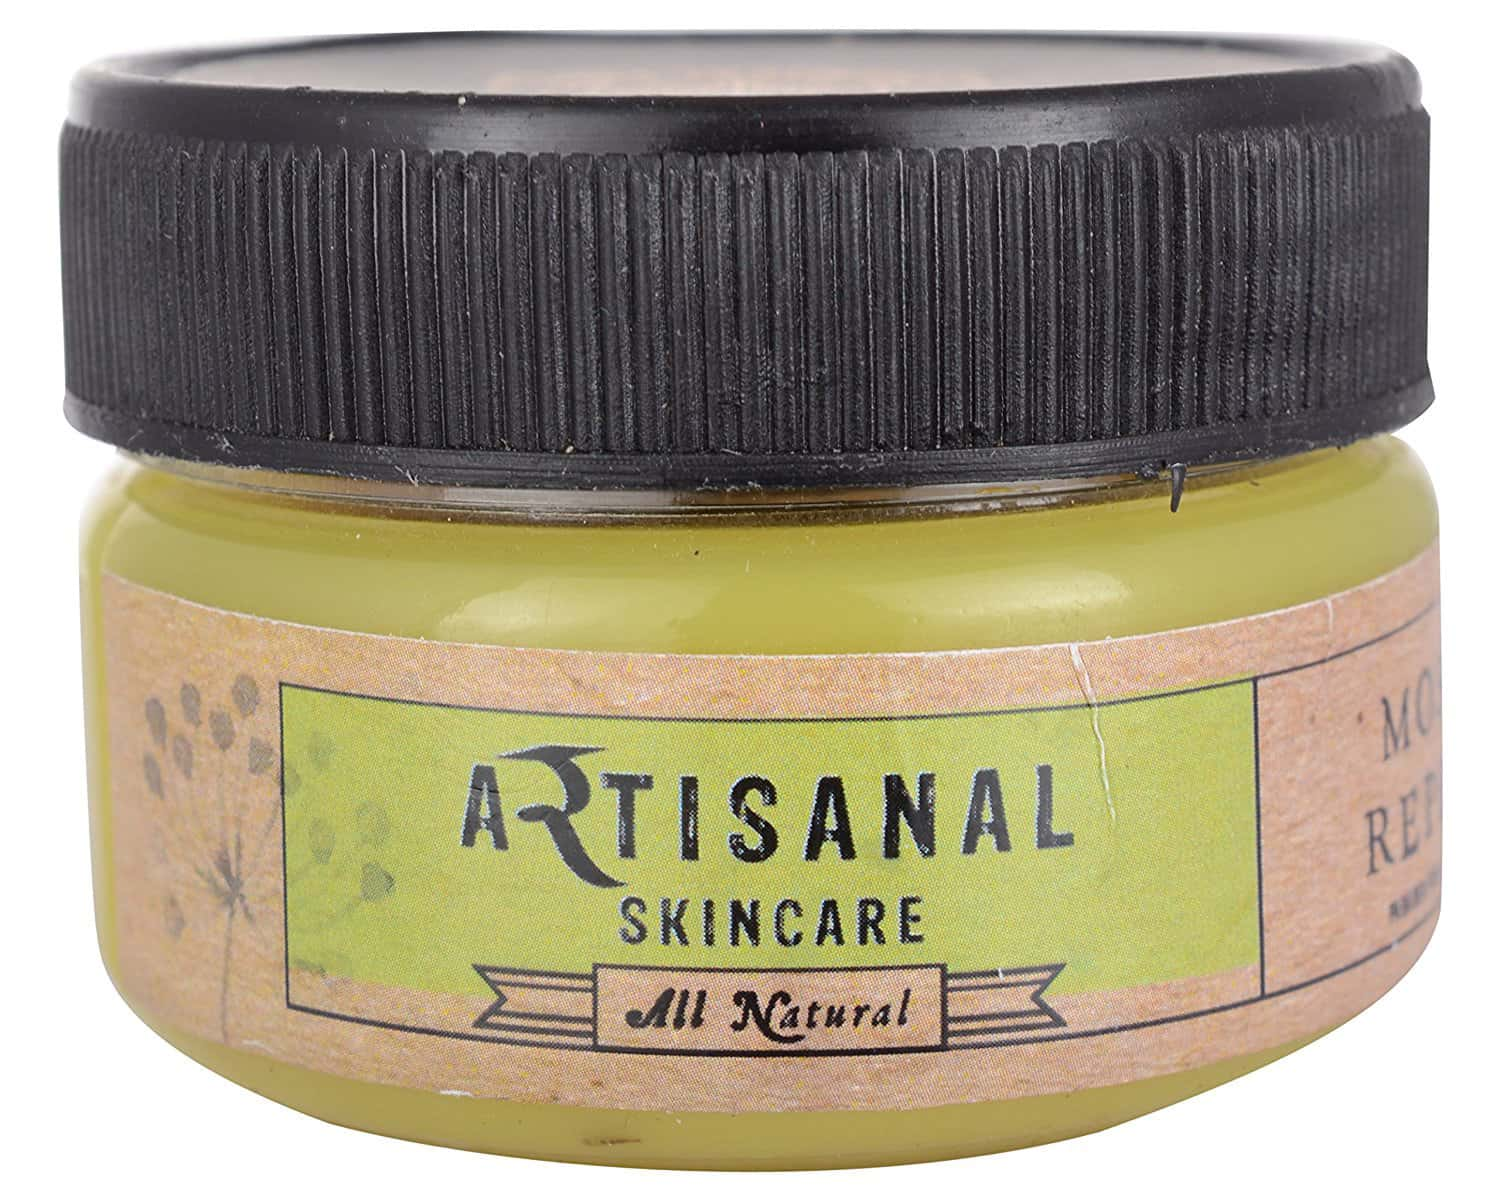 Artisanal Skincare Mosquito Repellant For Adults,100 Gm